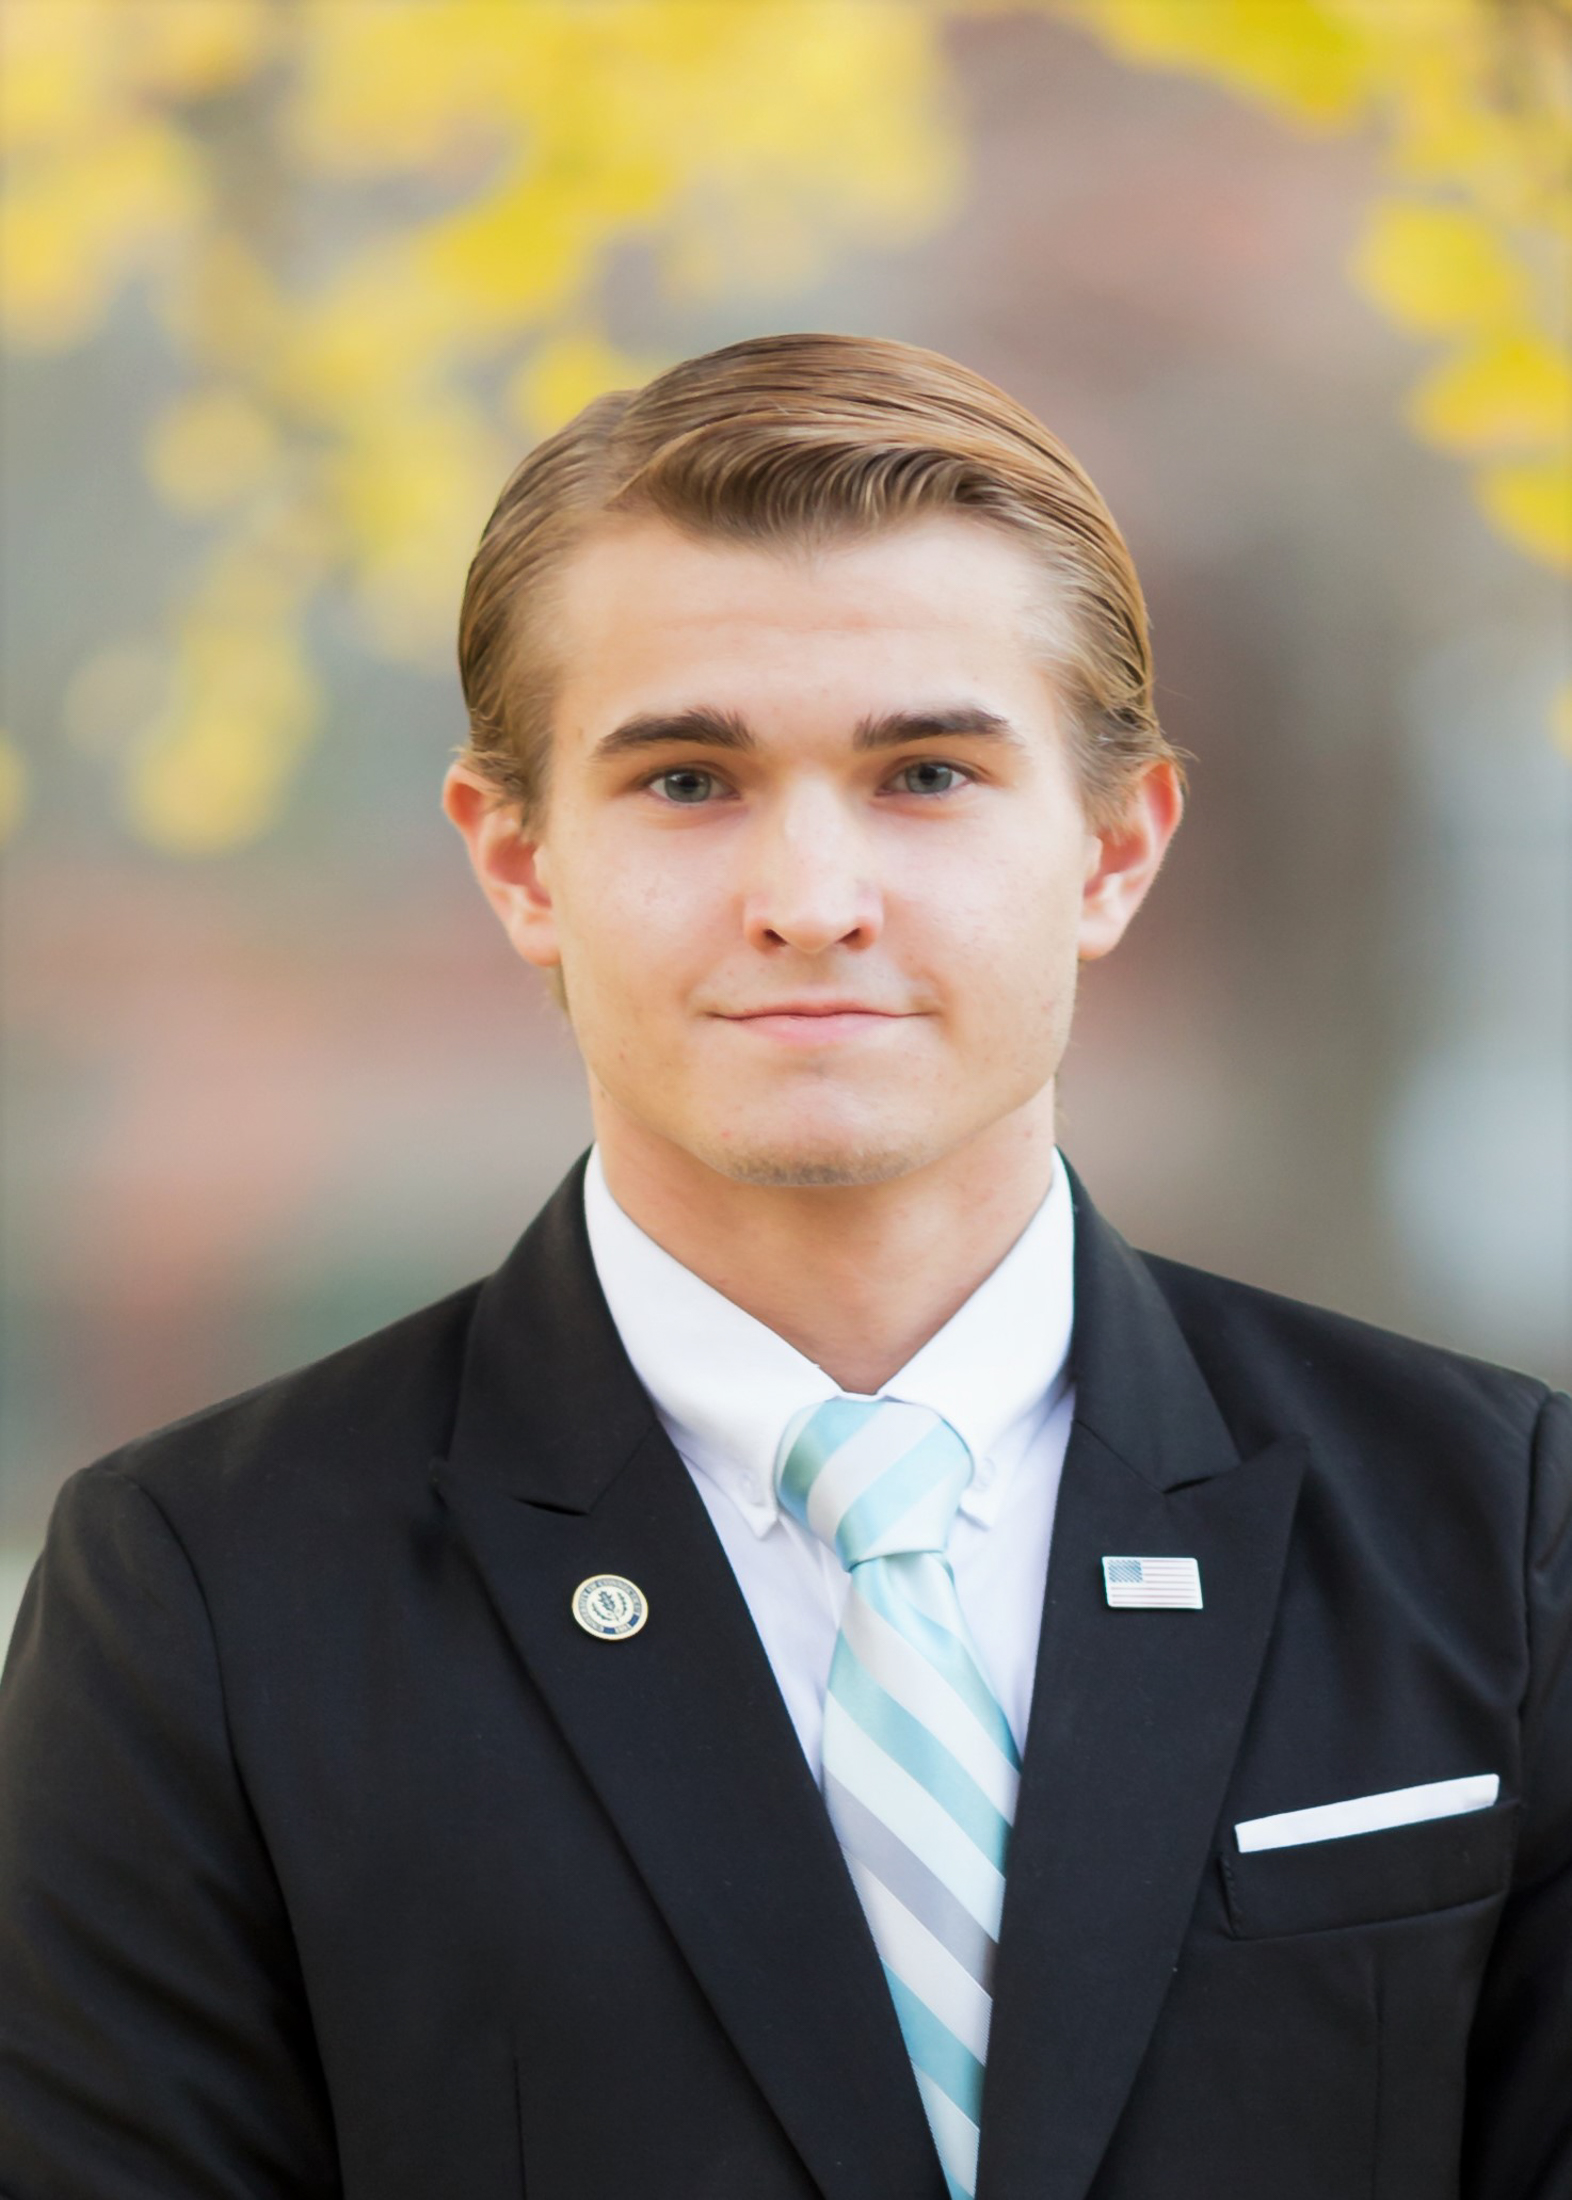 Dylan Nenadal, a fourth-semester management major, is running for Undergraduate Student Government comptroller position for the 2017-18 year. Nenadal believes that his experience as the Avery Point treasurer qualifies him for the position. (Tyler Benton/The Daily Campus)